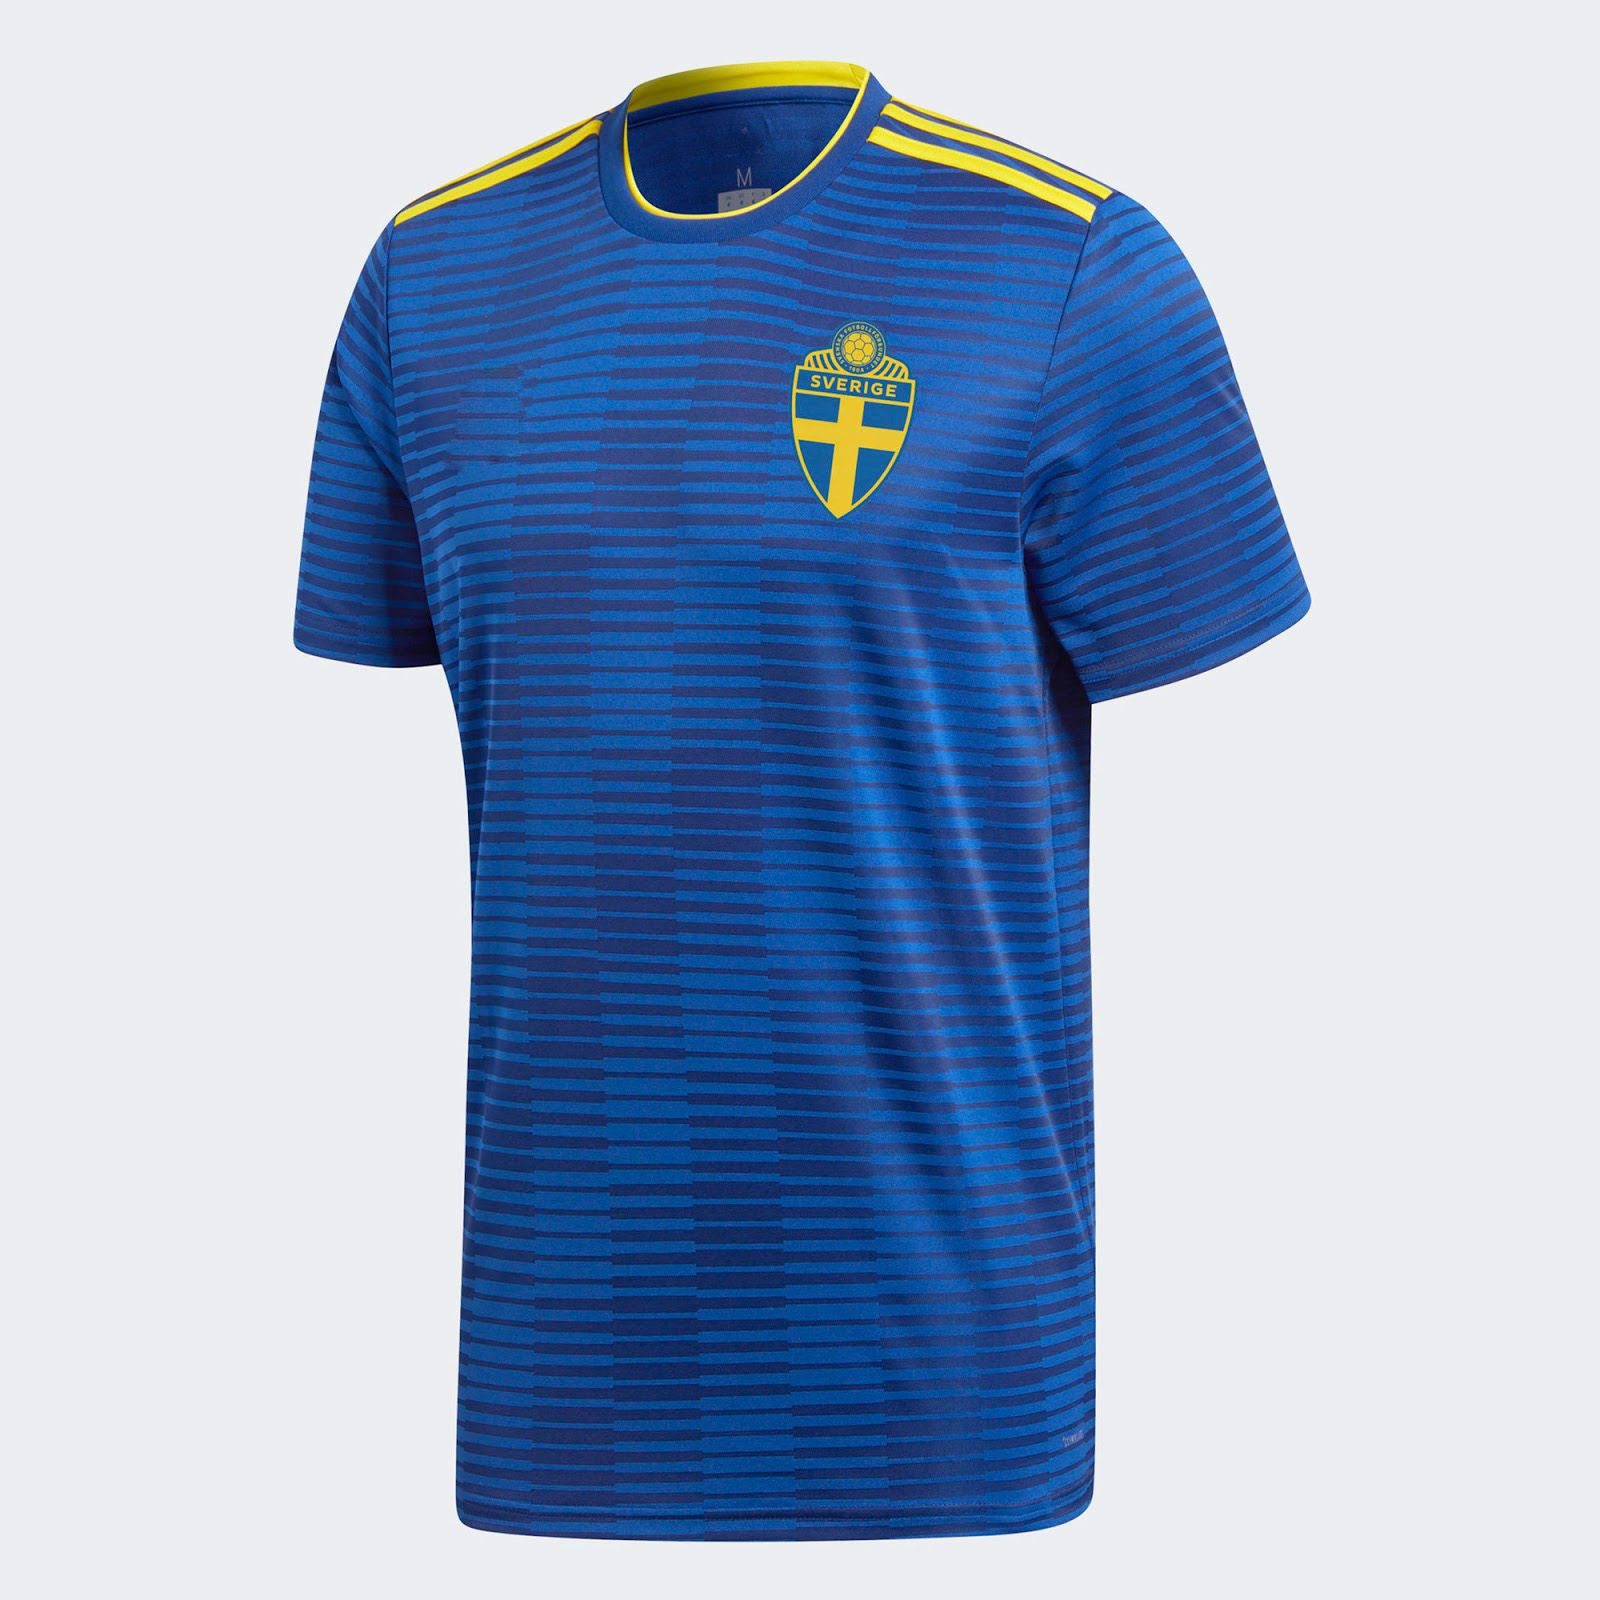 Image result for sweden world cup away jersey